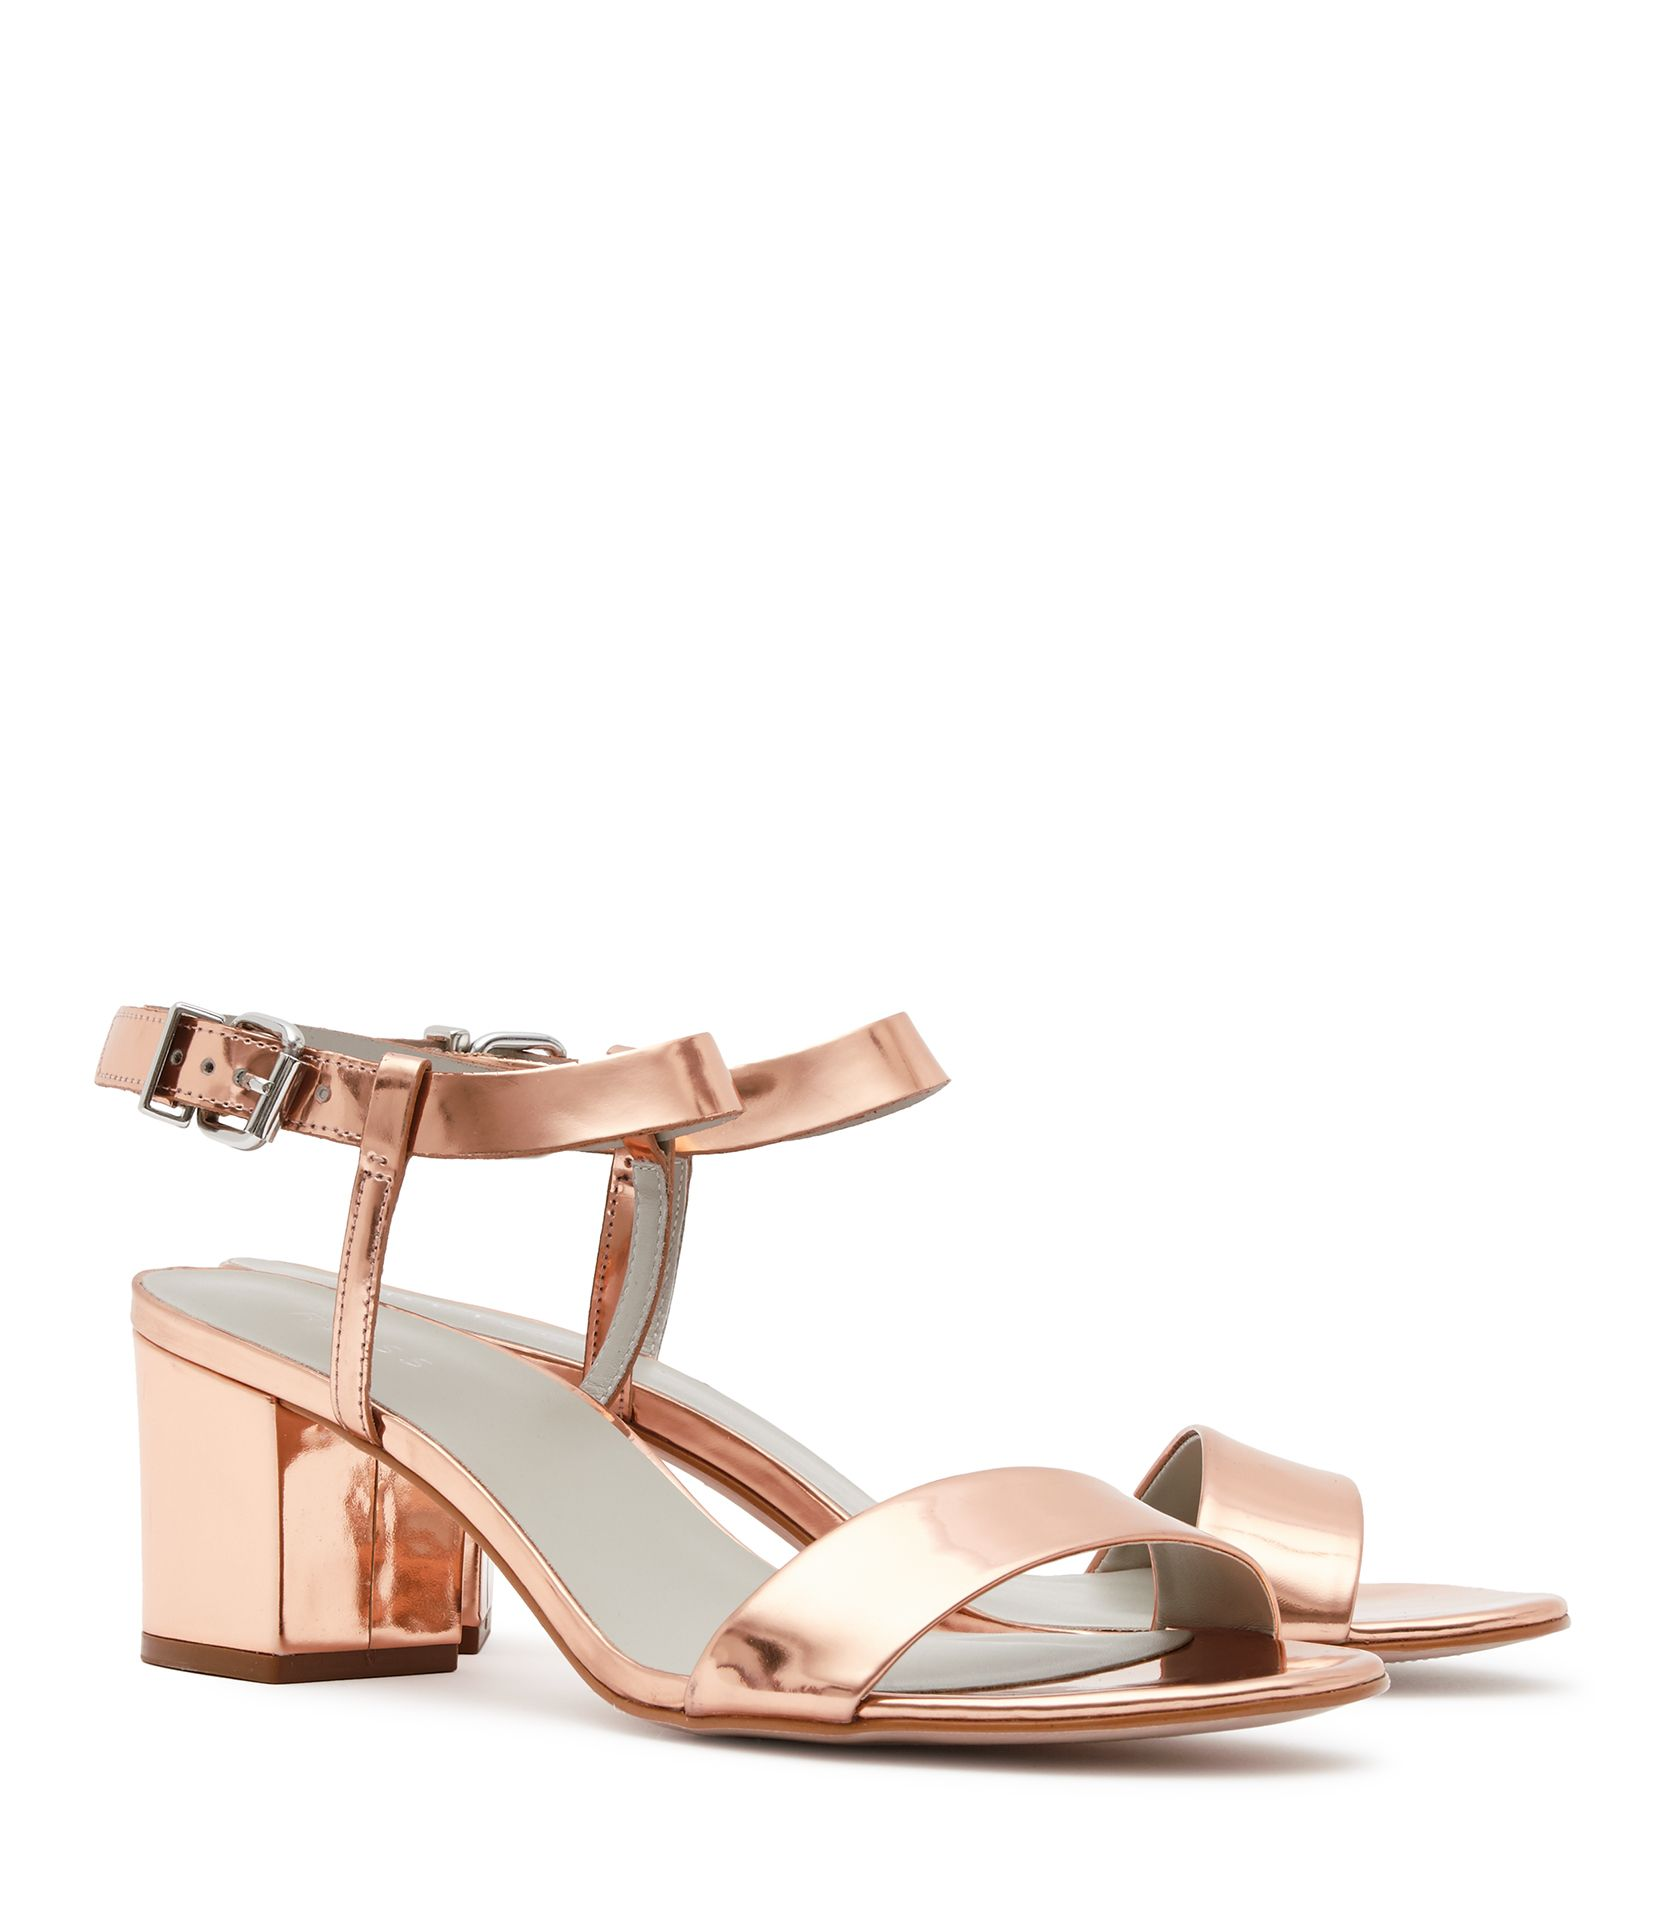 Womens Rose Gold Block Mid-heel Sandals - Reiss Vivi | For your ...